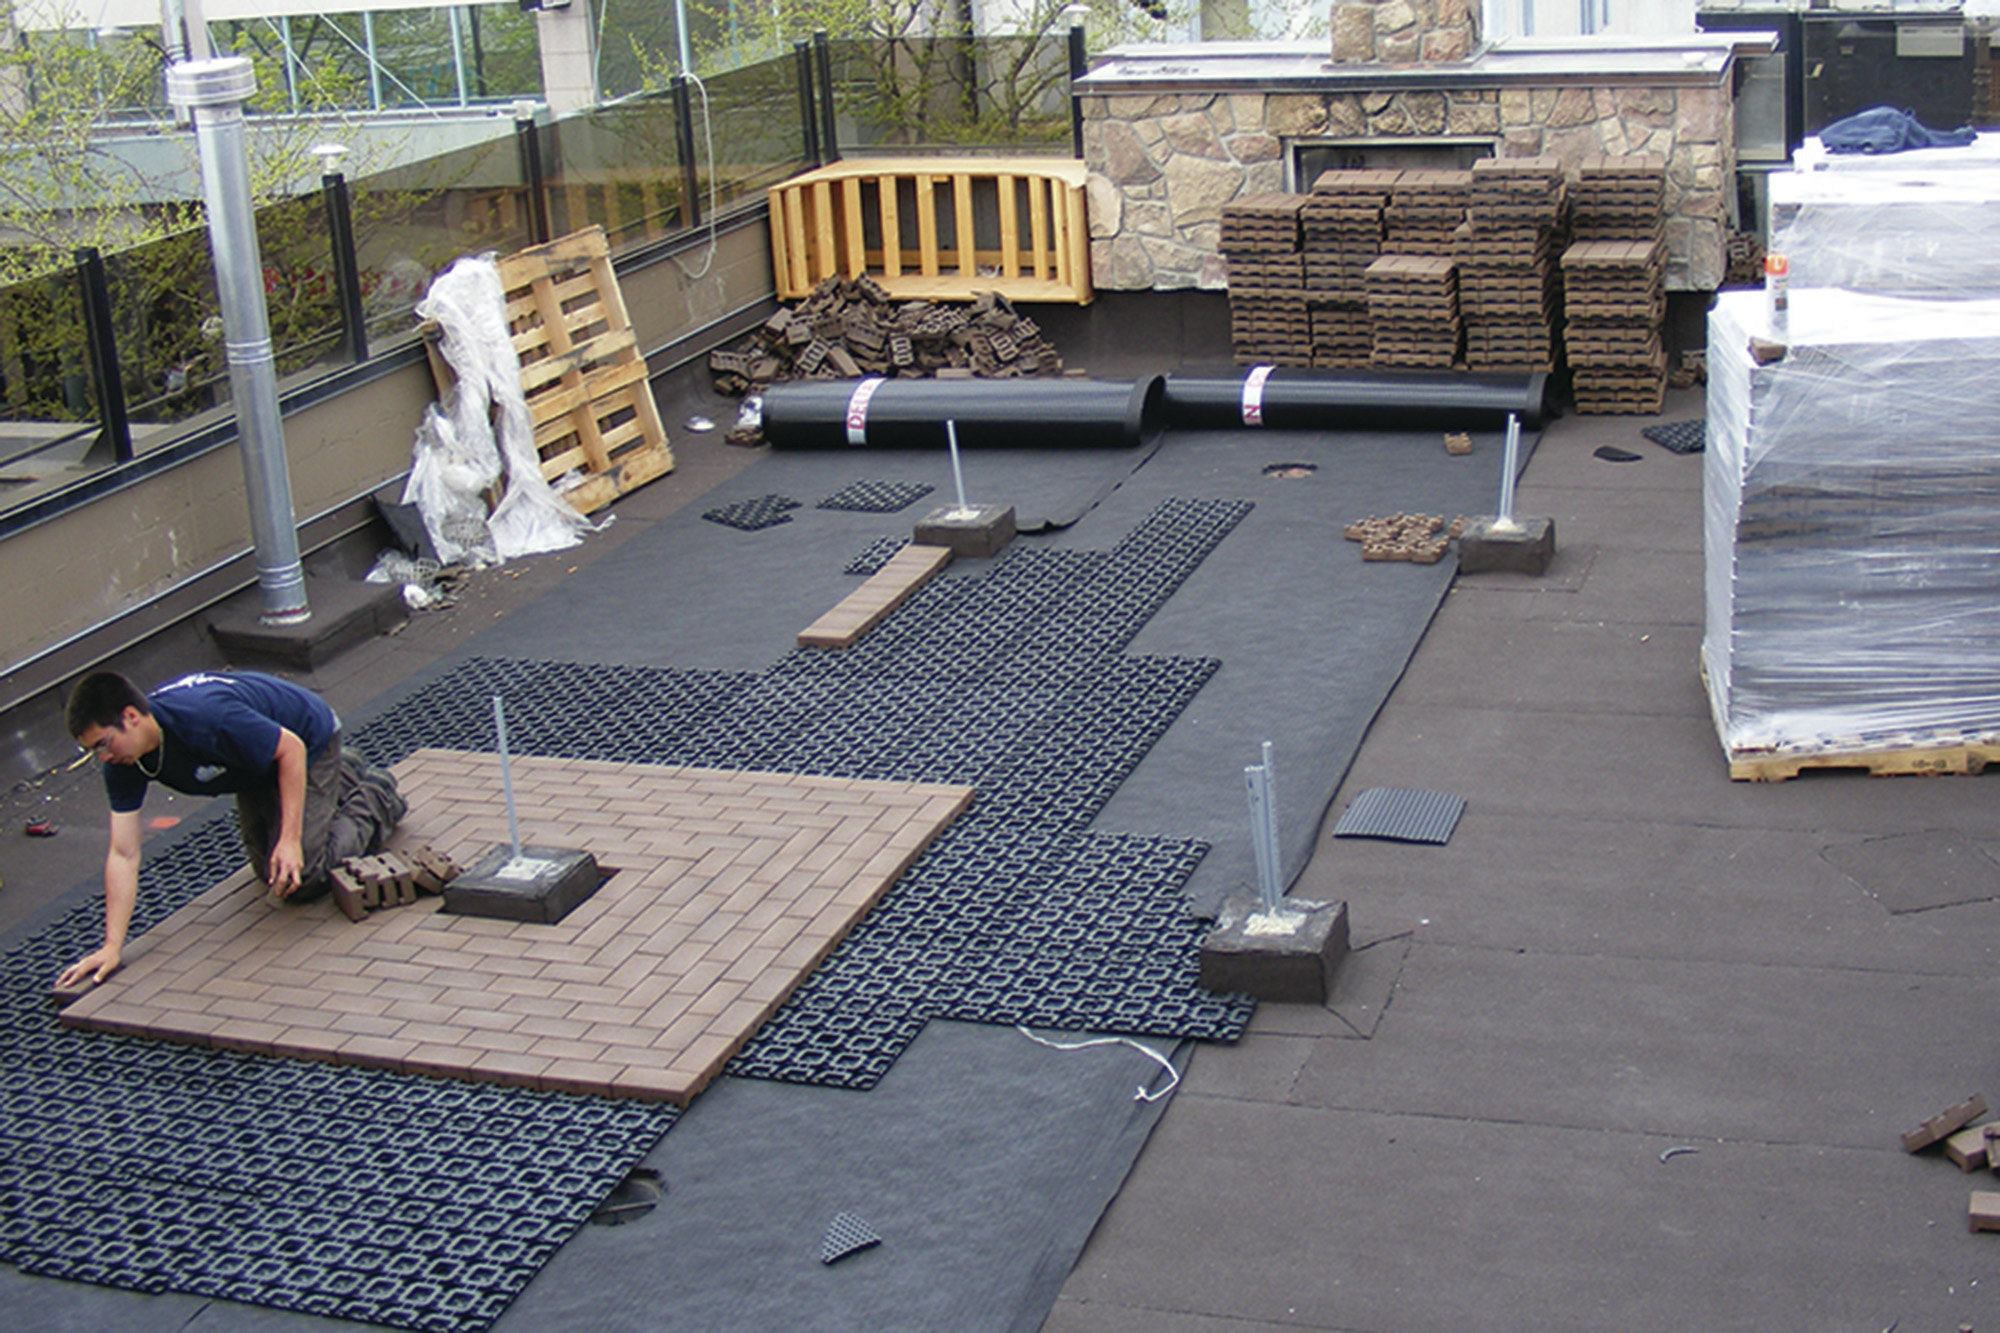 Dachterrasse Bodenbelag Pavers For Rooftop Decks Professional Deck Builder